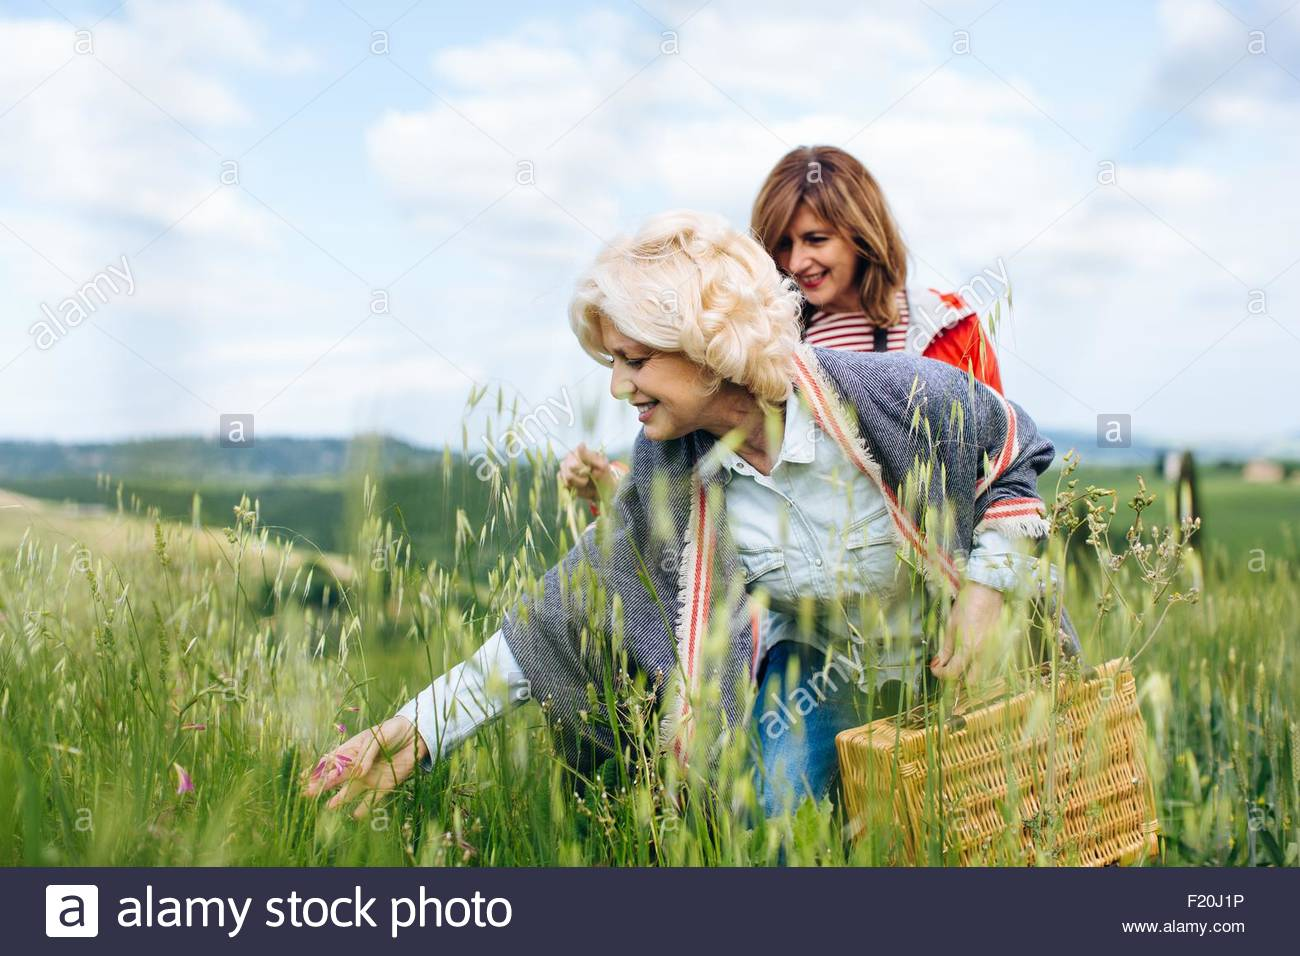 Two mature women looking at long grasses in wheatfield, Tuscany, Italy - Stock Image